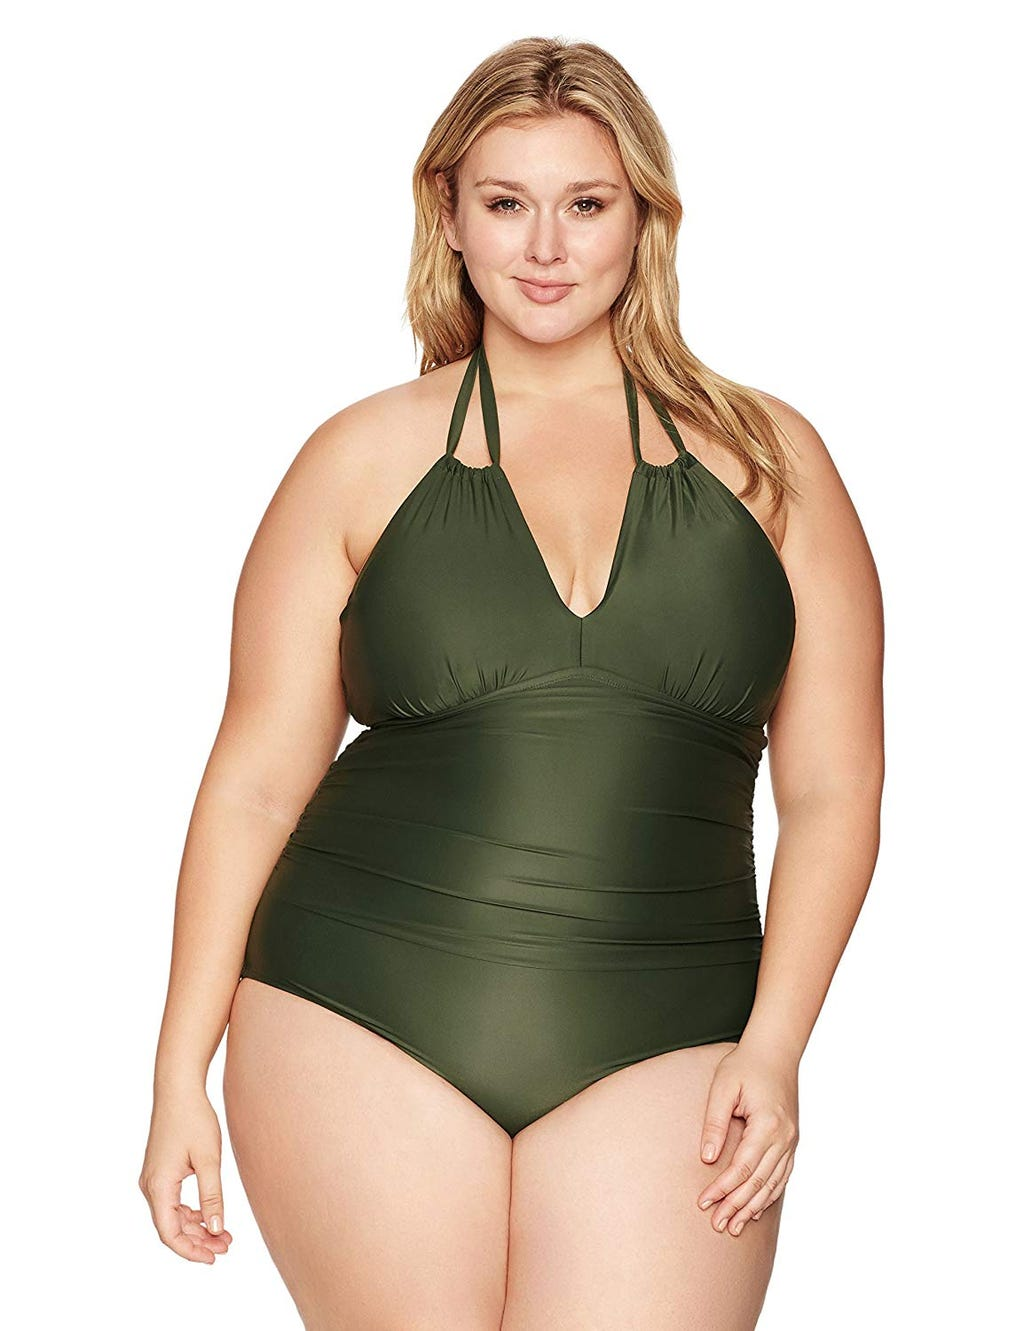 Amazon Queen Bleu best swimsuits on amazon - highest rated cheap swim